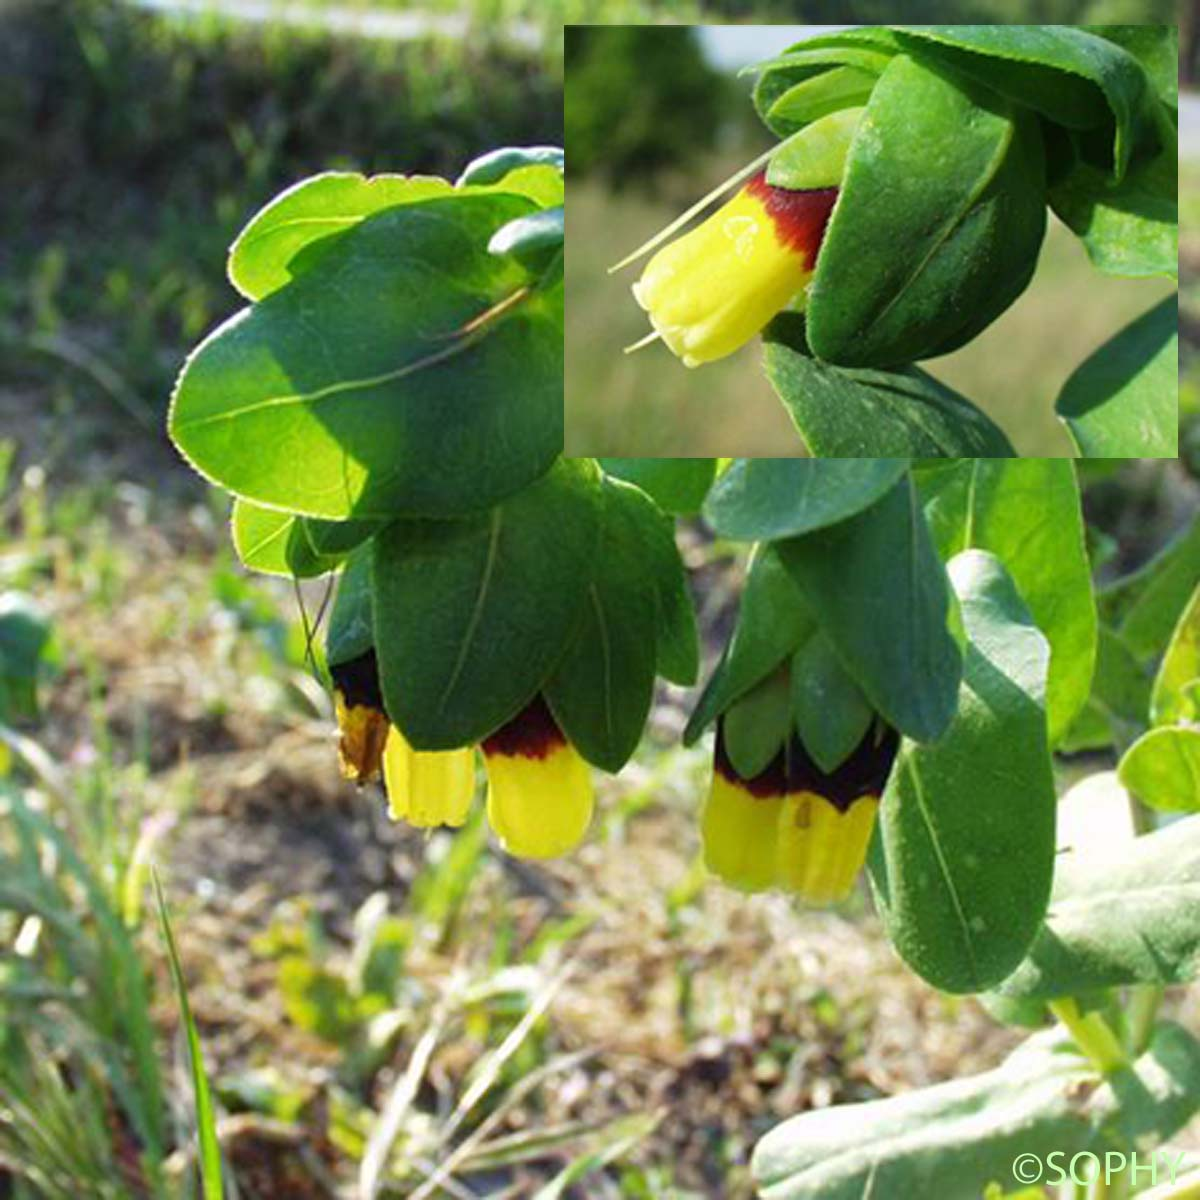 Grand Cérinthe - Cerinthe major subsp. major